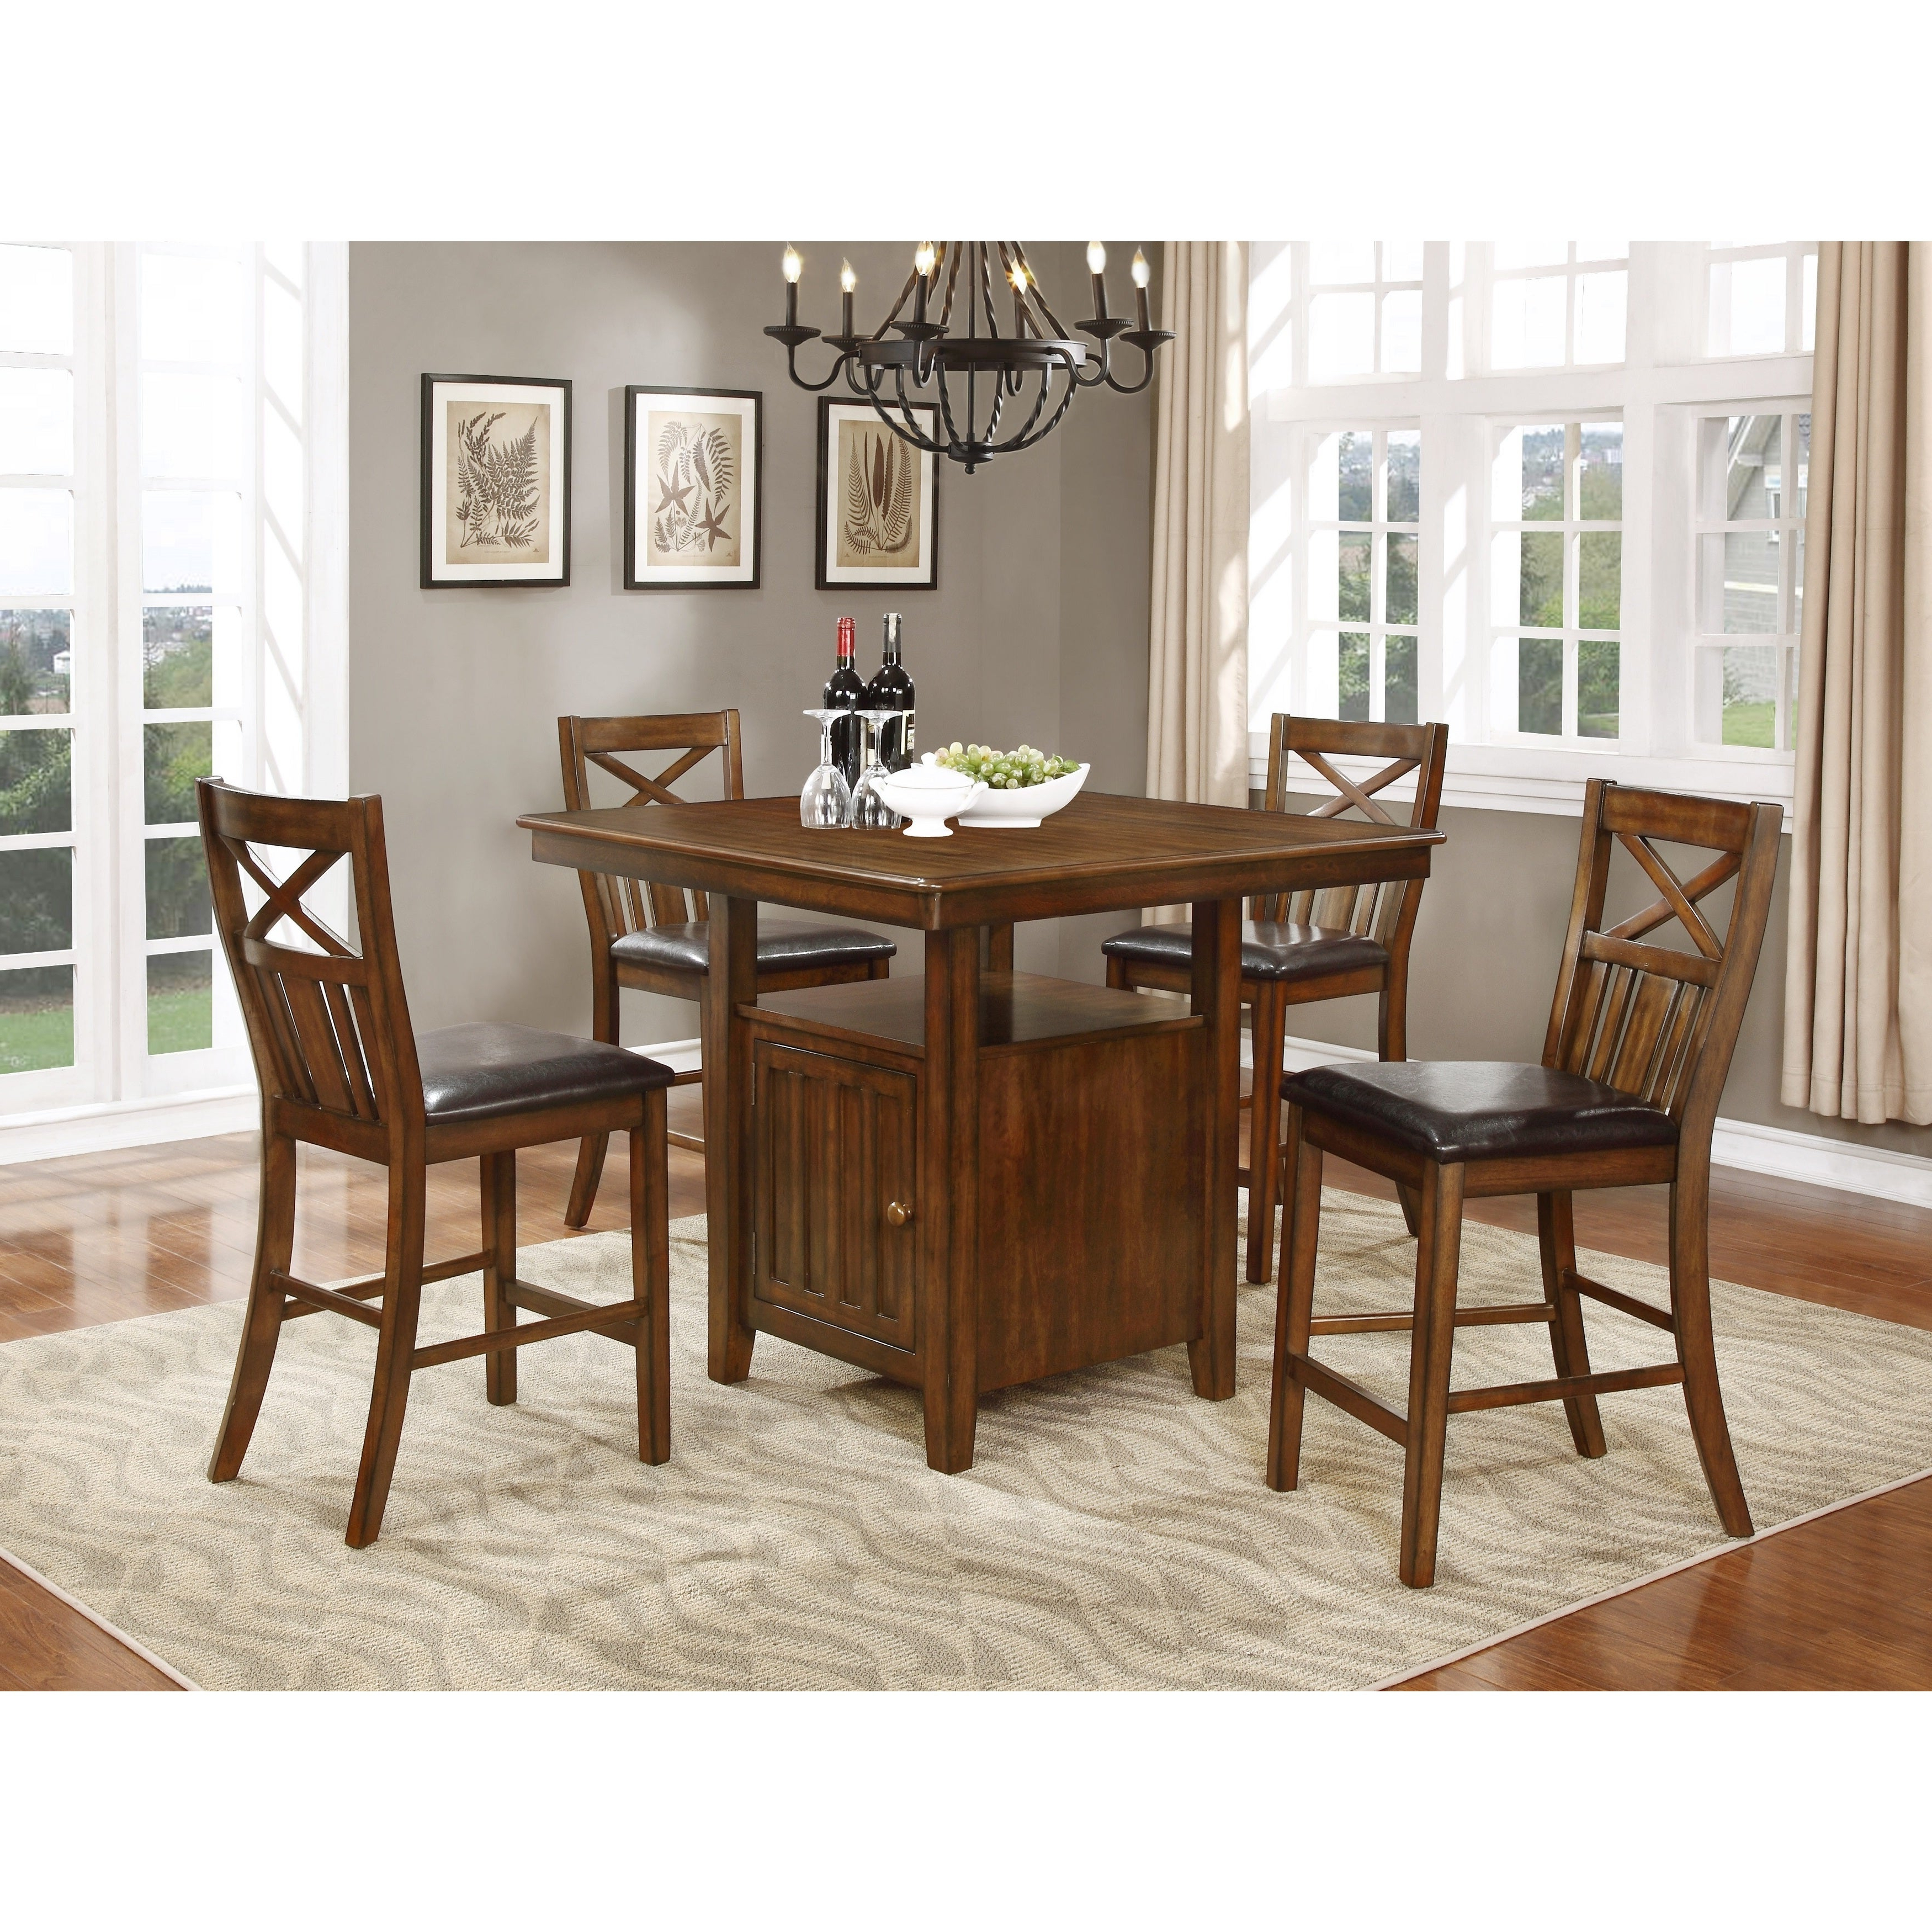 Most Recently Released Bryson Cherry Brown Counter Height Dining Table Set W/ Storage Throughout Bryson 5 Piece Dining Sets (View 5 of 20)